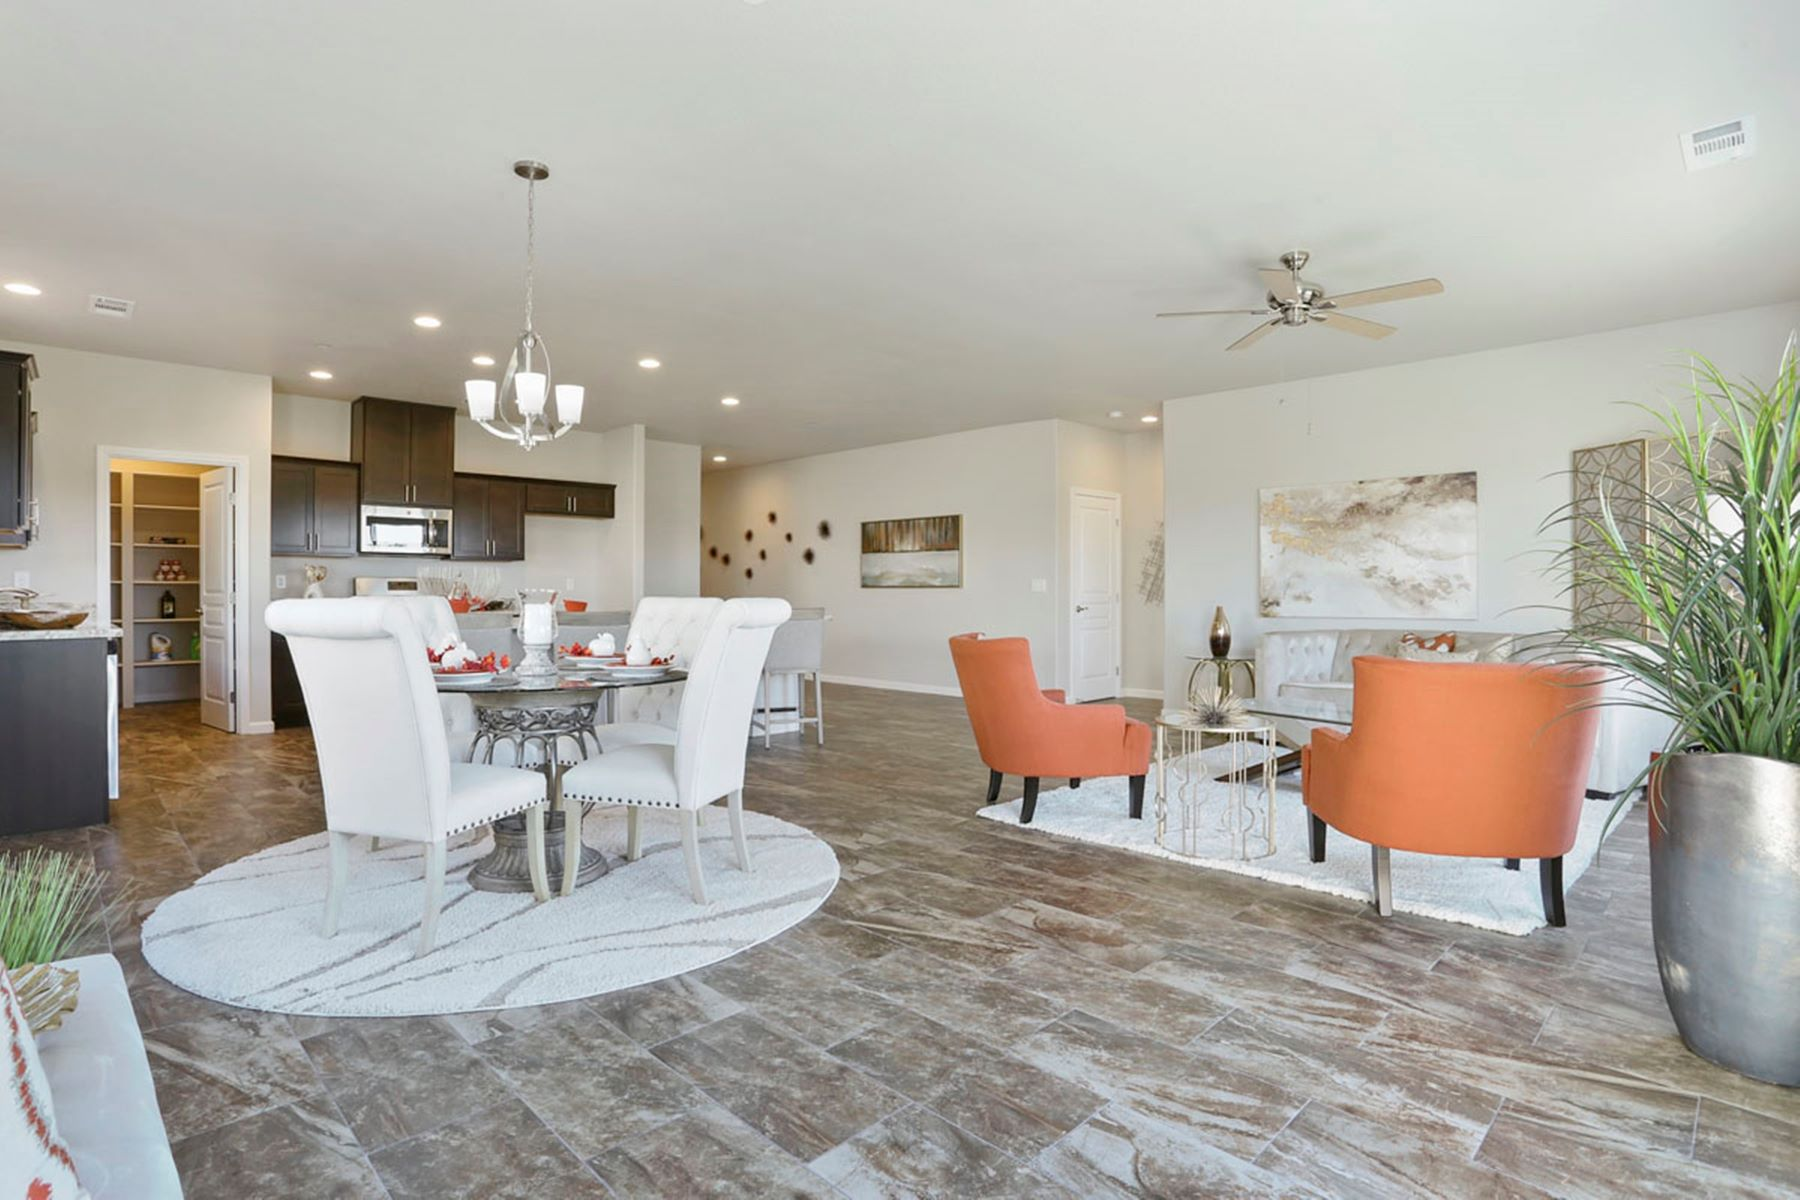 Single Family Homes for Sale at Brand New Home on the Street of Dreams 1766 Old Oak Drive Stockton, California 95206 United States